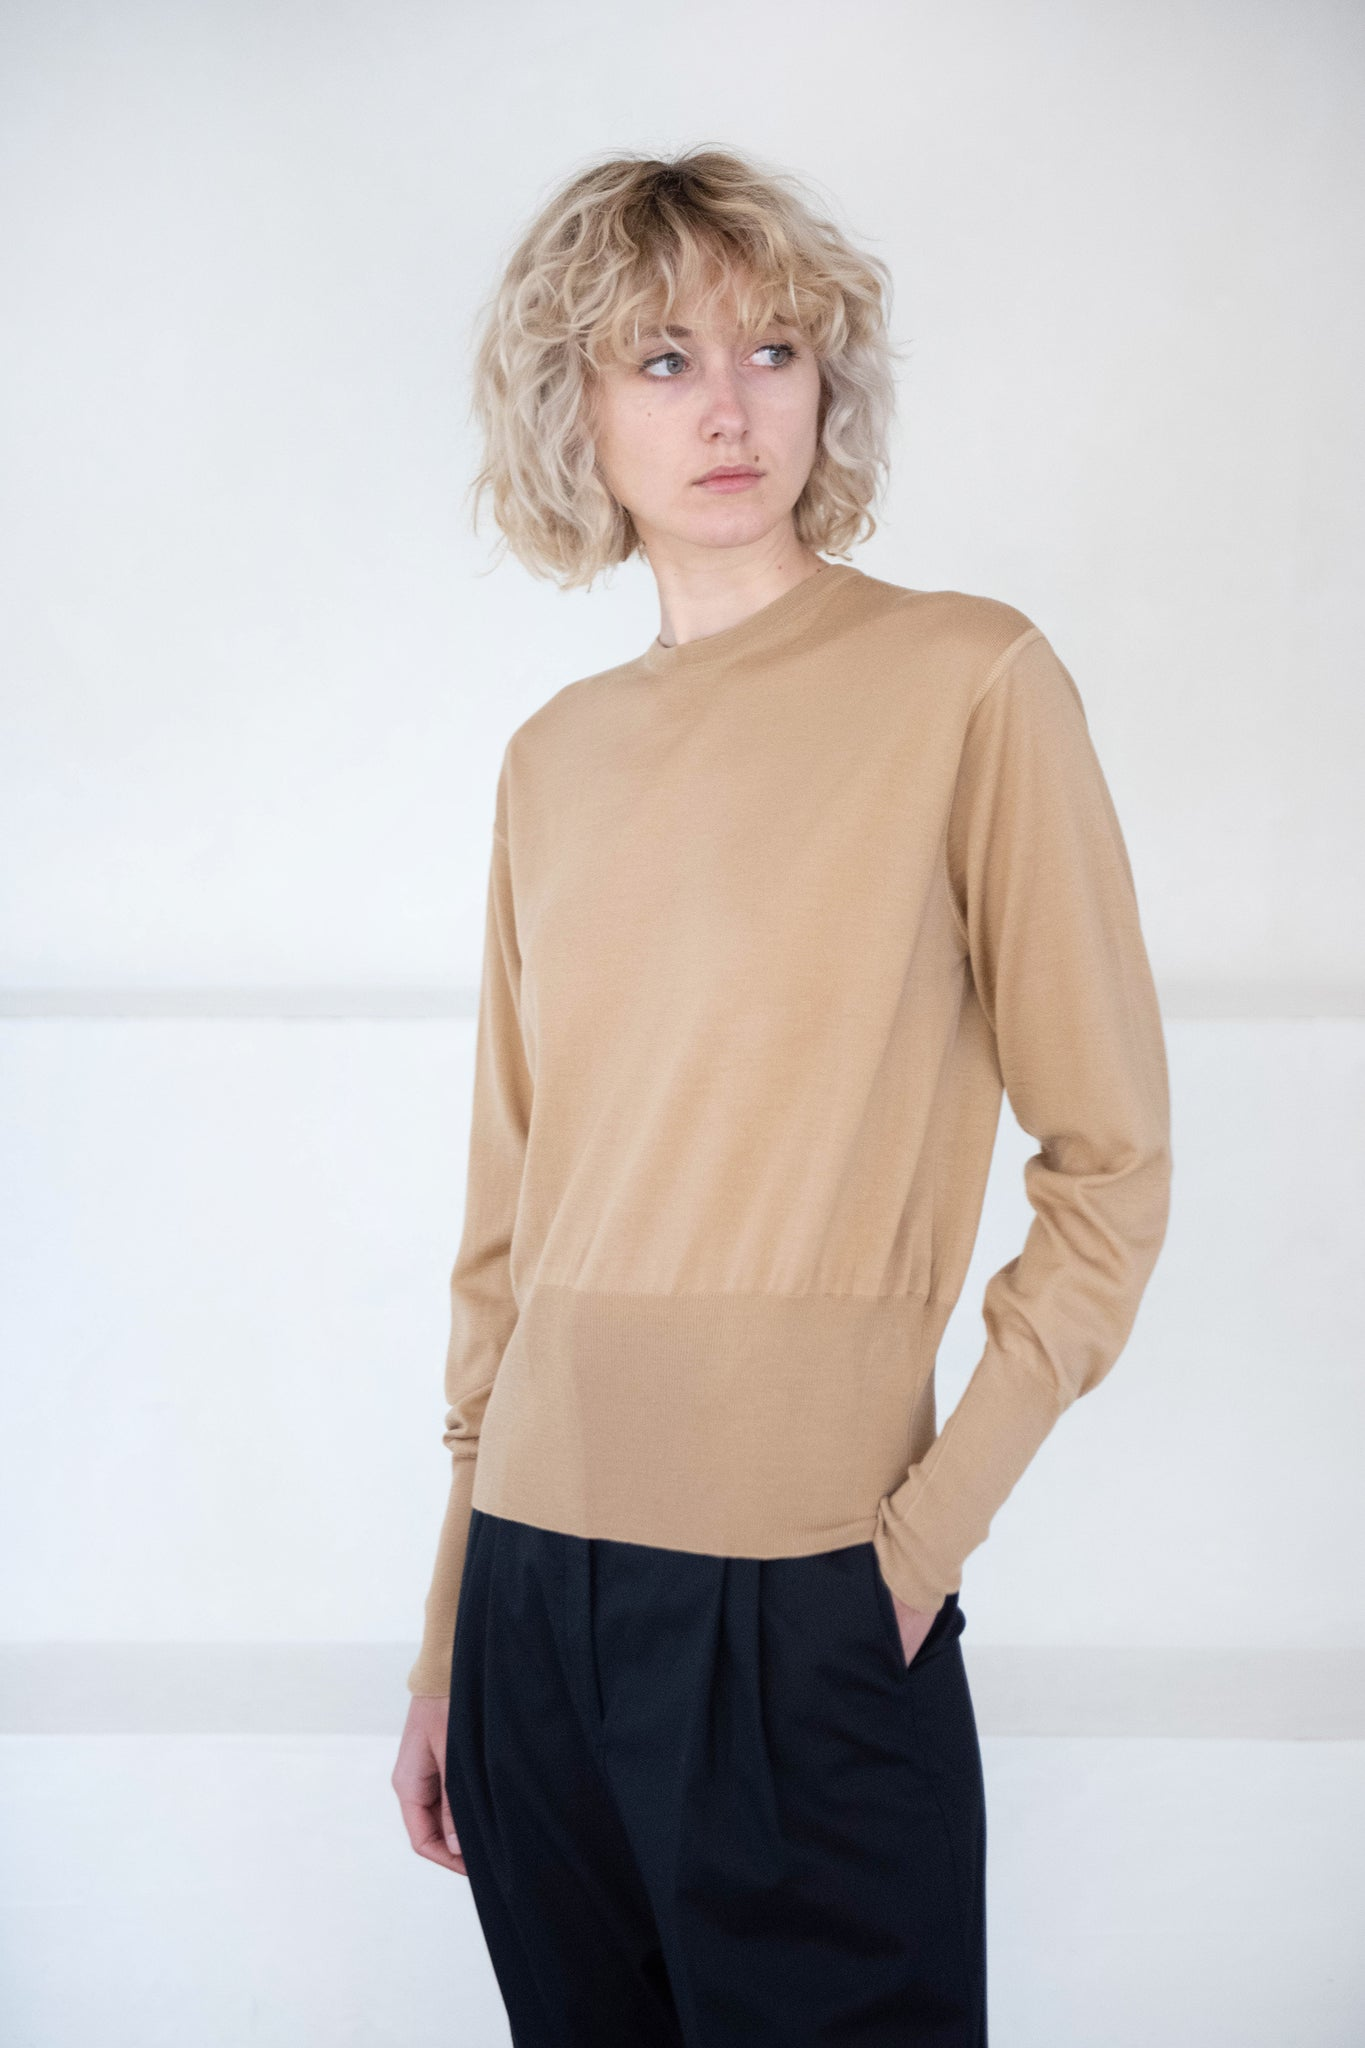 GAUCHERE - Sonita Knit Top, beige